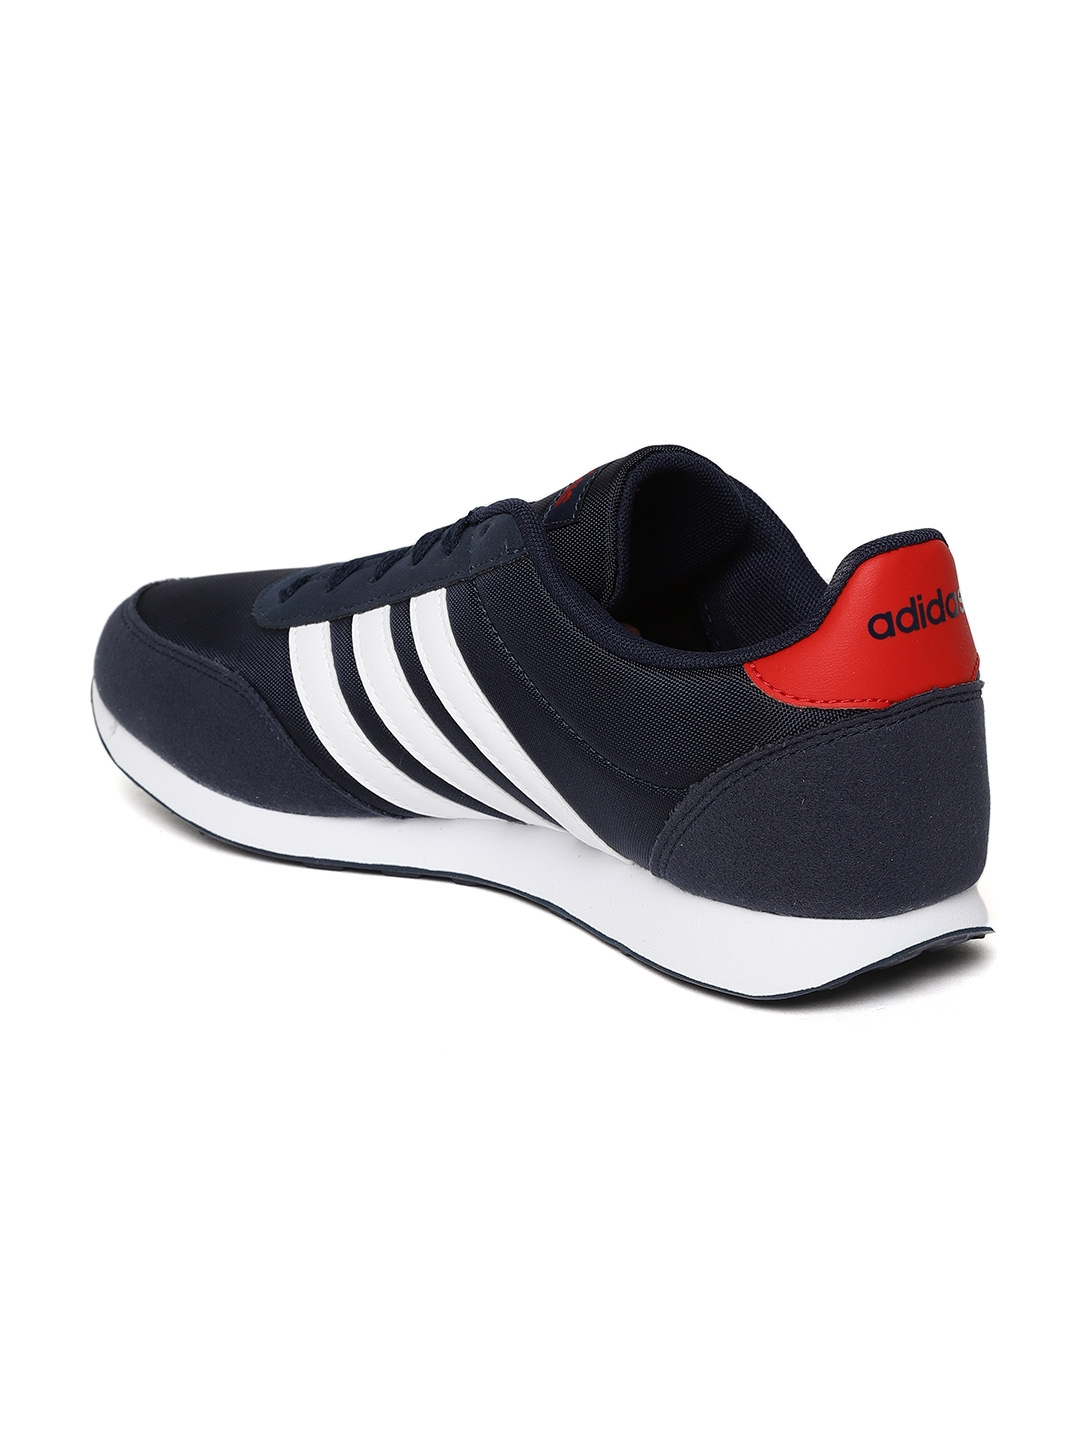 quality design e3700 77711 ADIDAS Men Navy Blue V Racer 2.0 Running Shoes